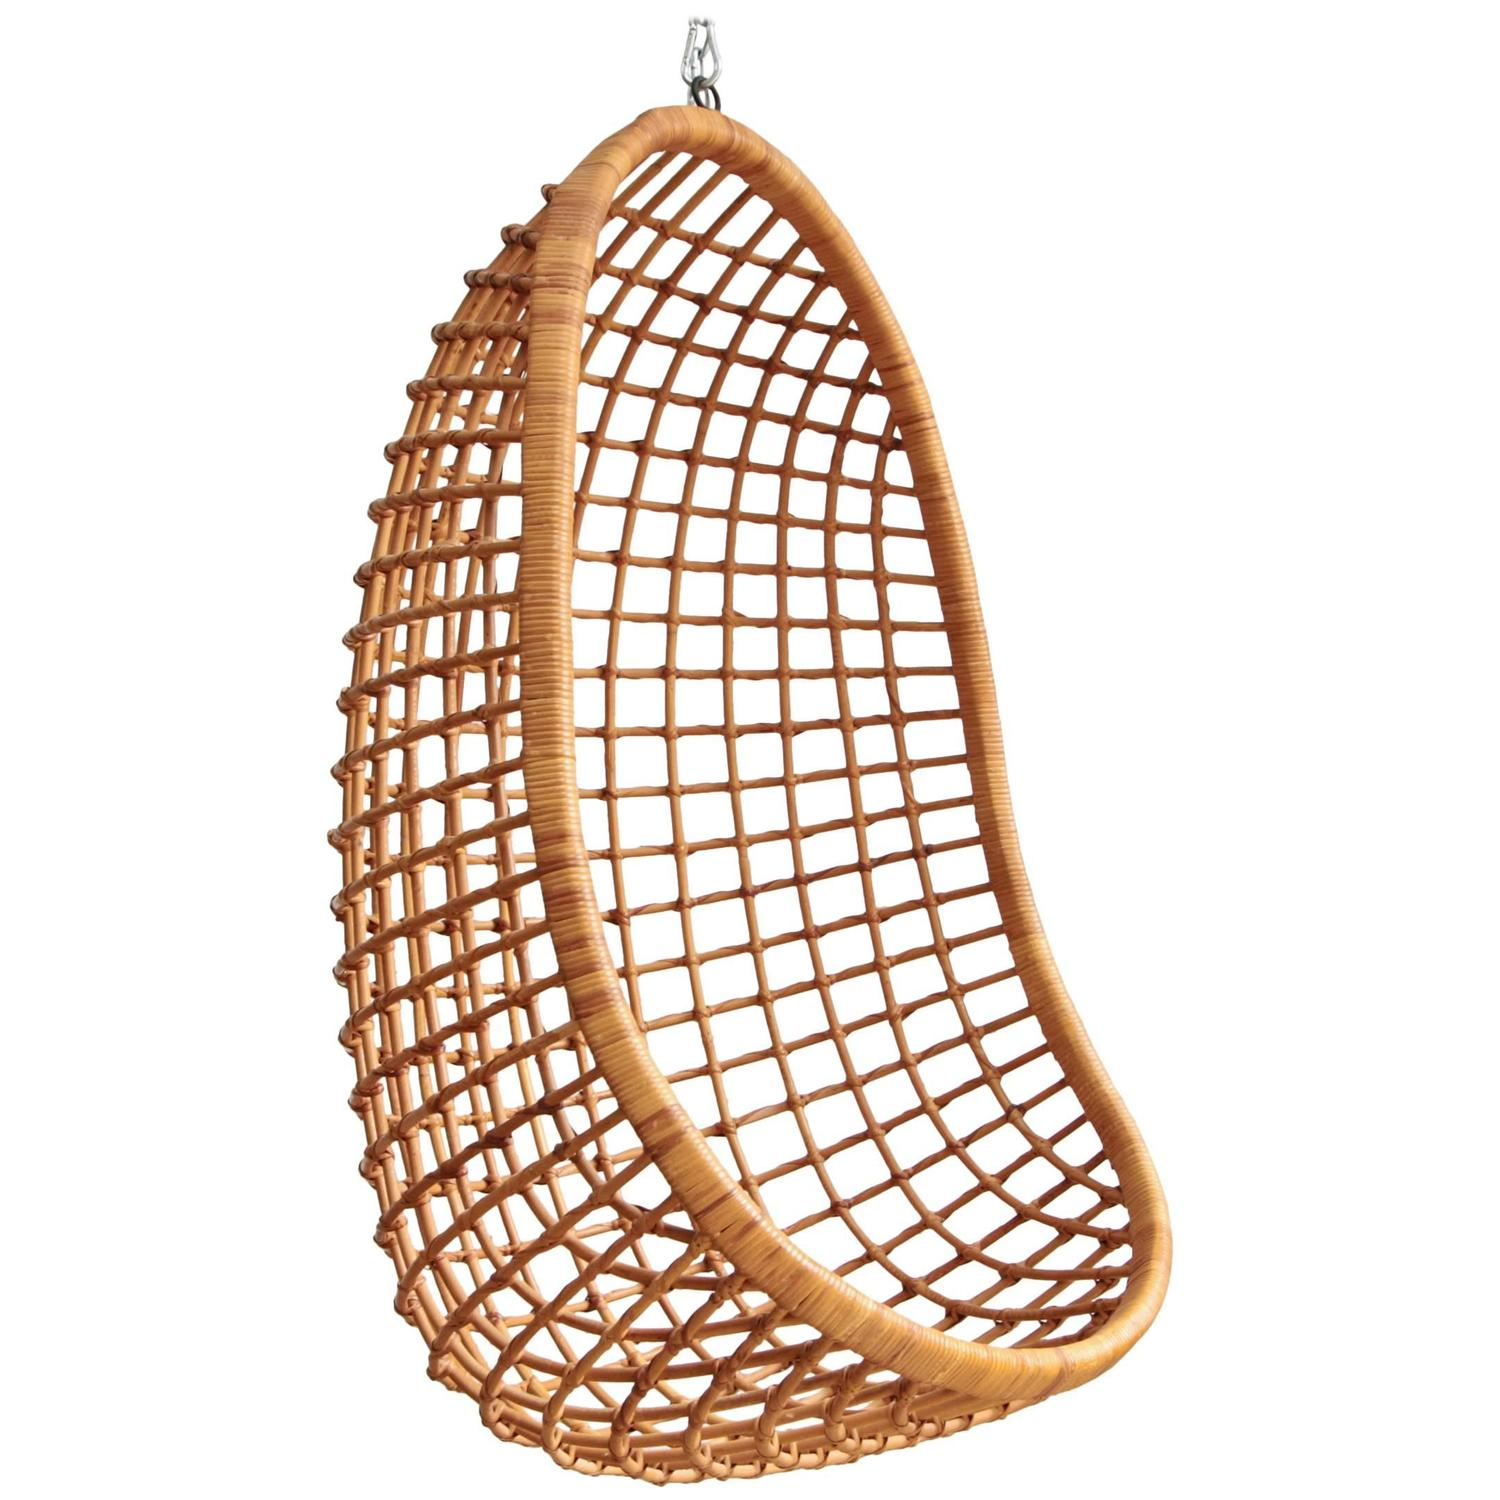 Rattan Egg Chairs Rohe Noordwolde Hanging Rattan Egg Chair At 1stdibs